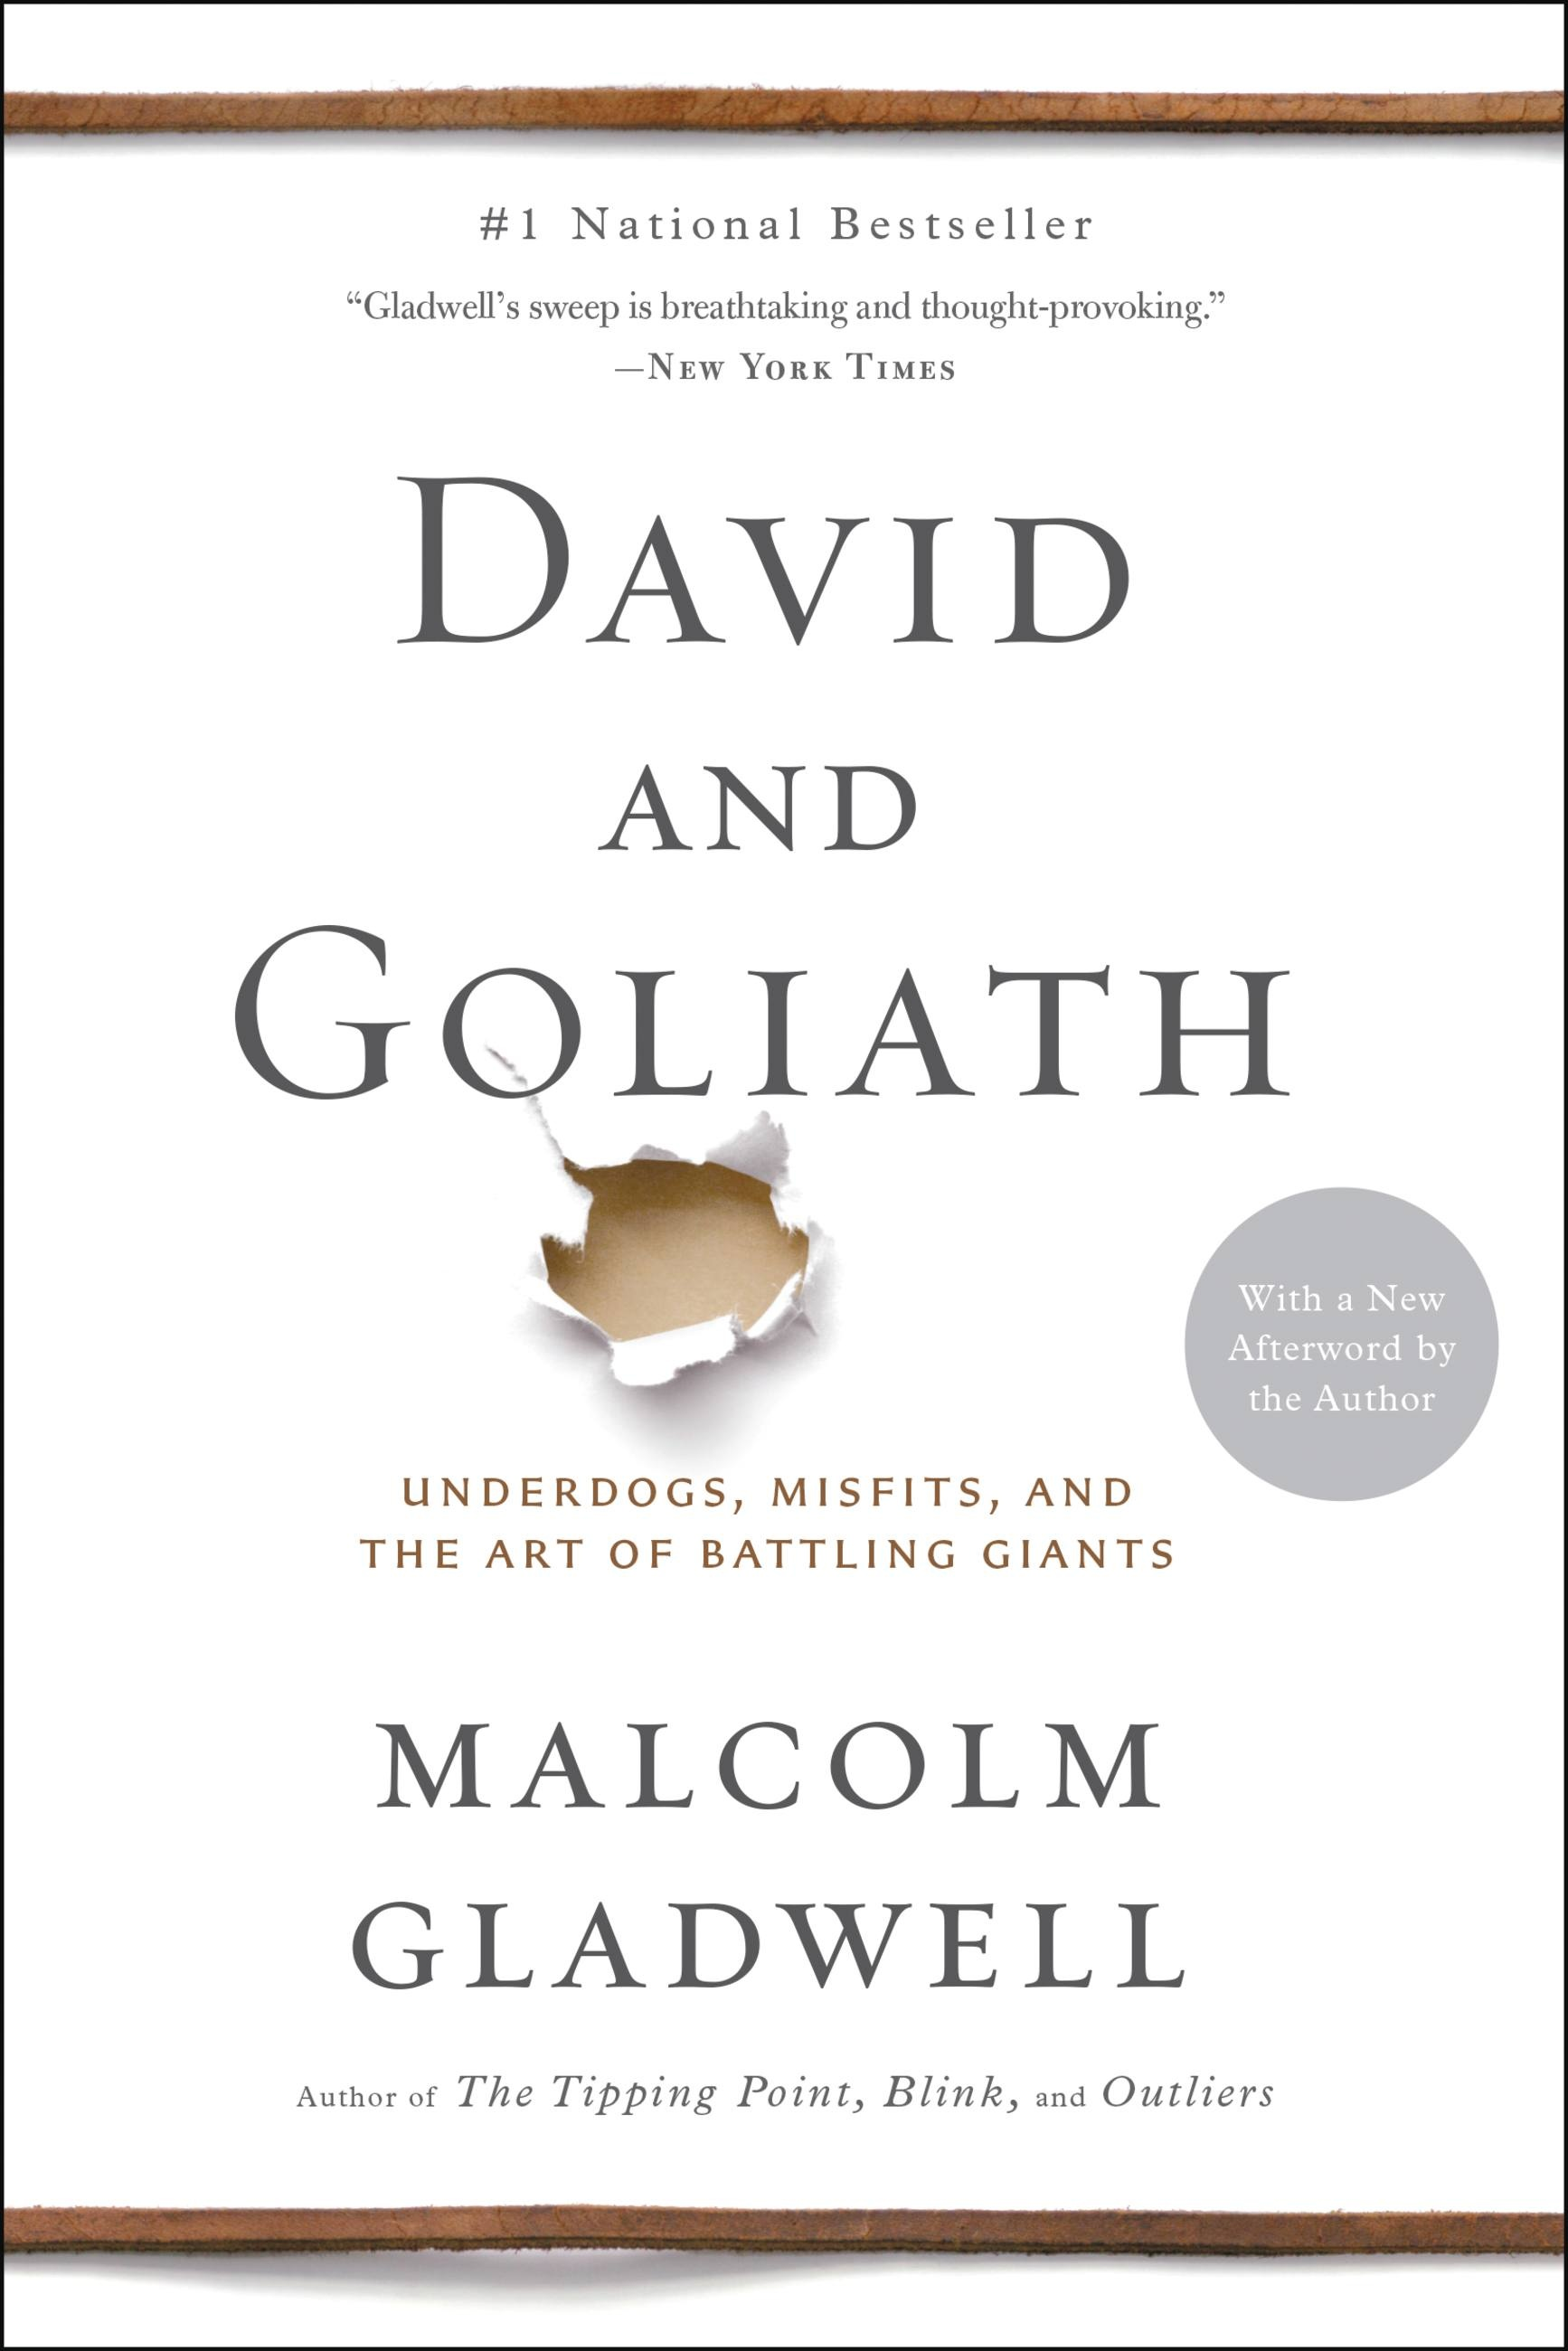 Outliers by malcolm gladwell hachette book group david and goliath fandeluxe Gallery